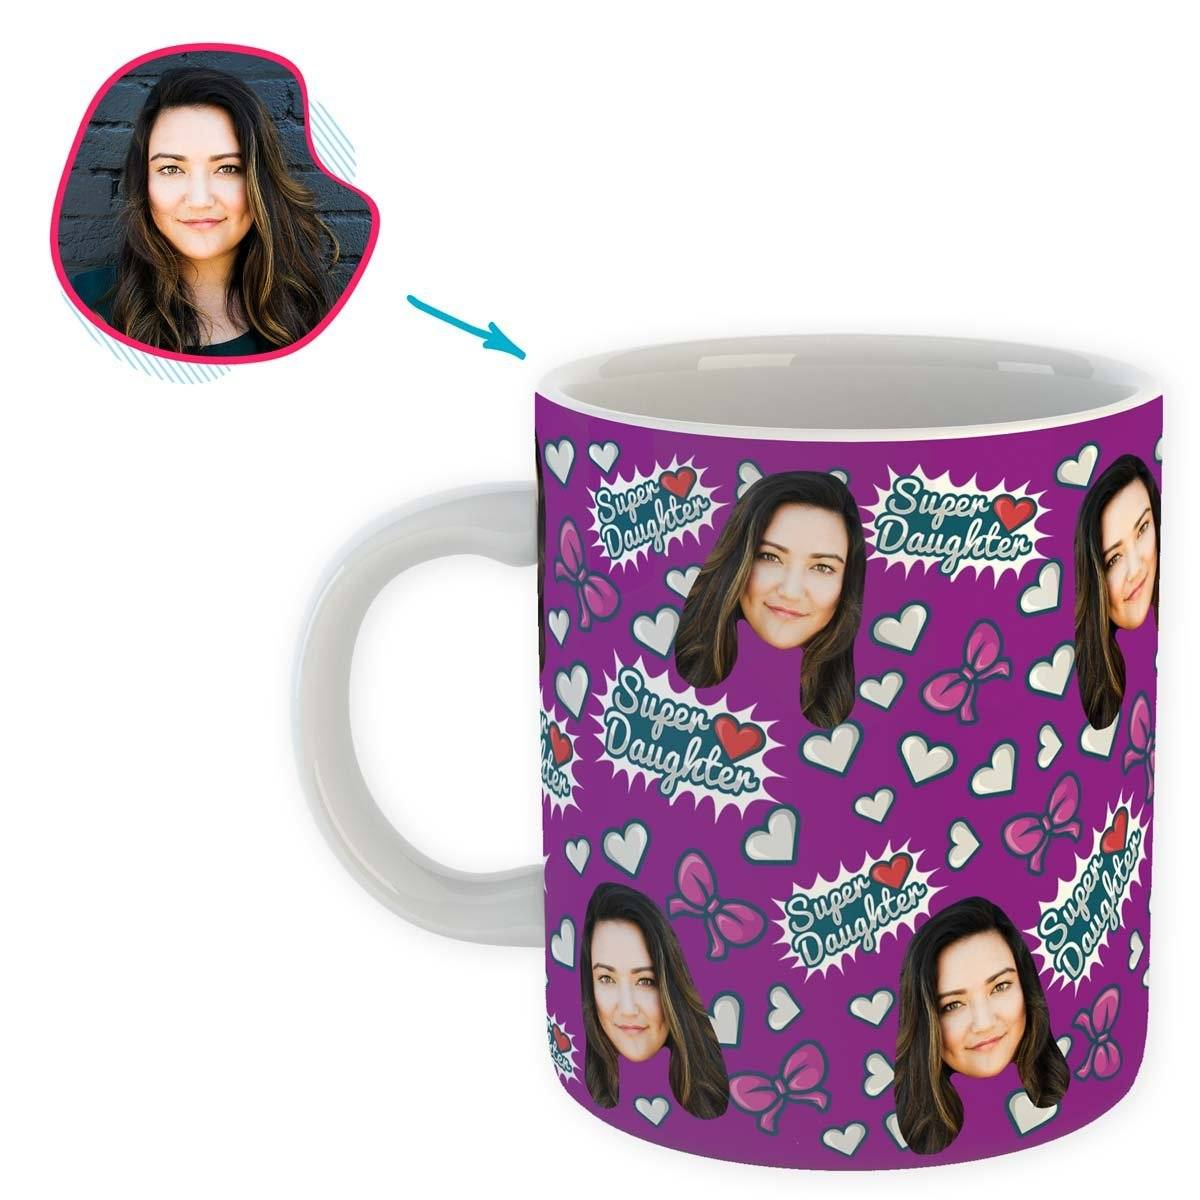 purple Super Daughter mug personalized with photo of face printed on it